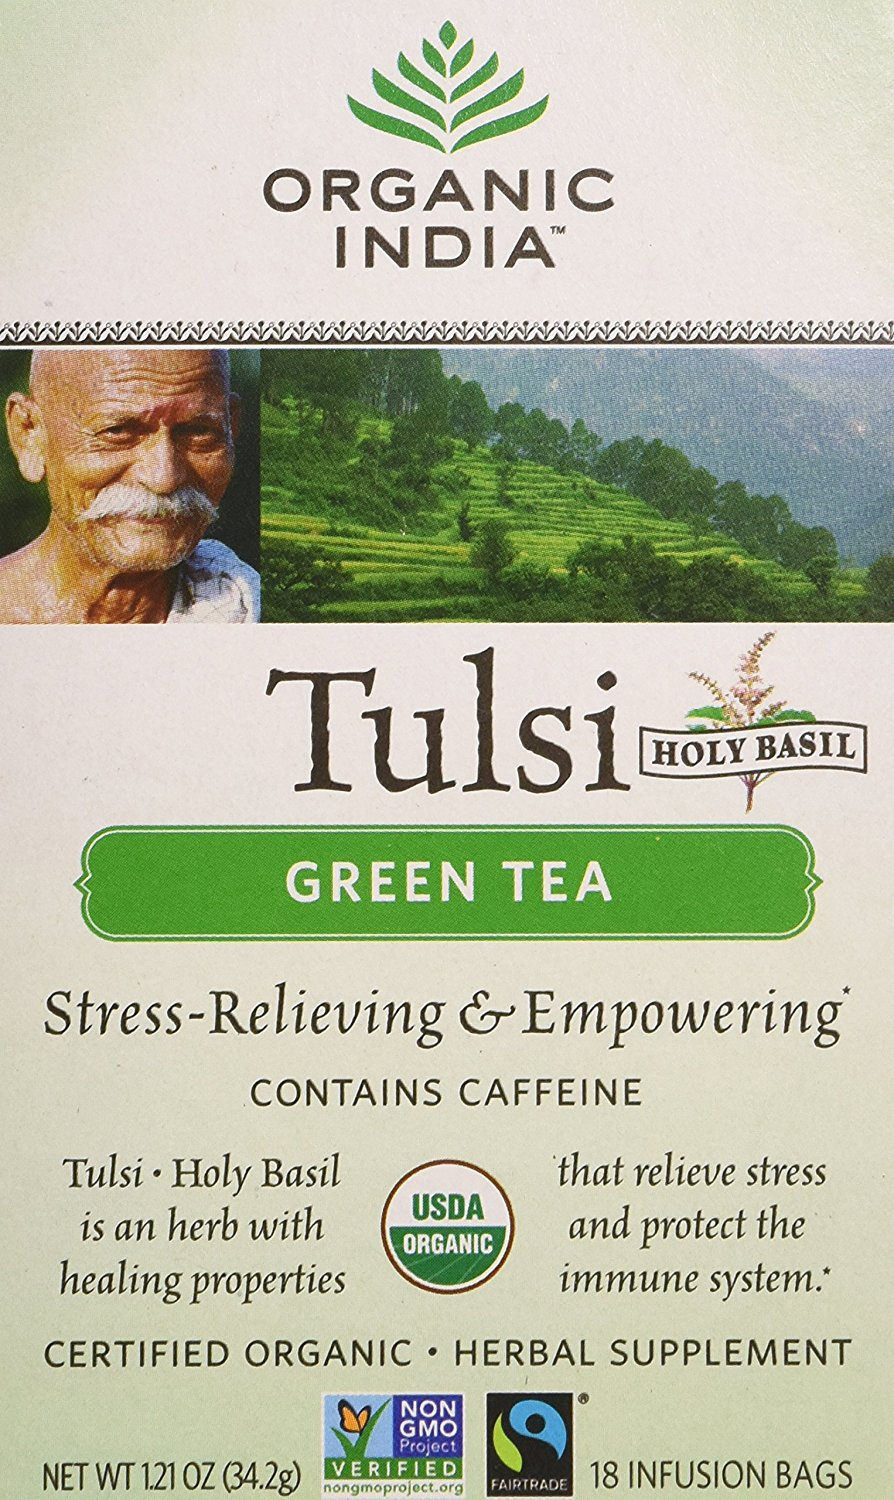 Best Green Tea Brand in India: Organic India Tulsi Green Tea